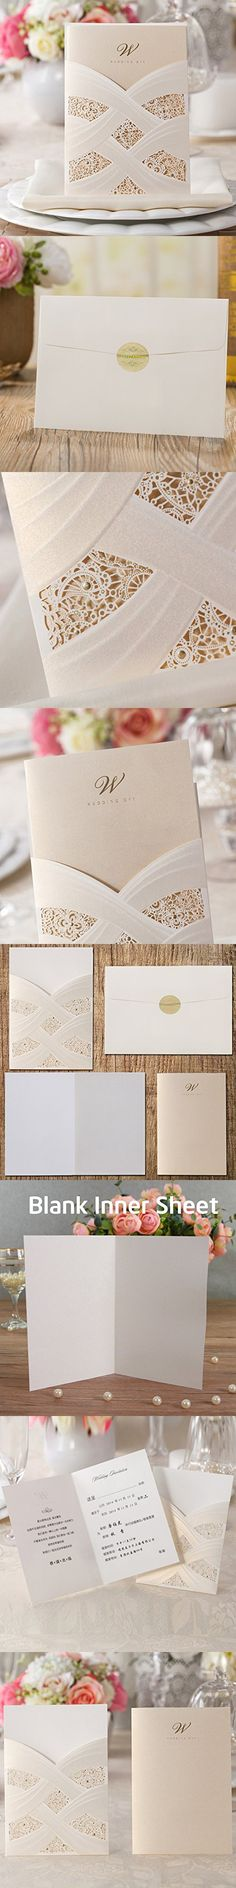 Wishmade 50x gold laser cut square wedding invitation cards kits wishmade 50x gold laser cut square wedding invitation cards kits with embossed hollow floral favors bridal shower engagement birthday baby shower stopboris Image collections